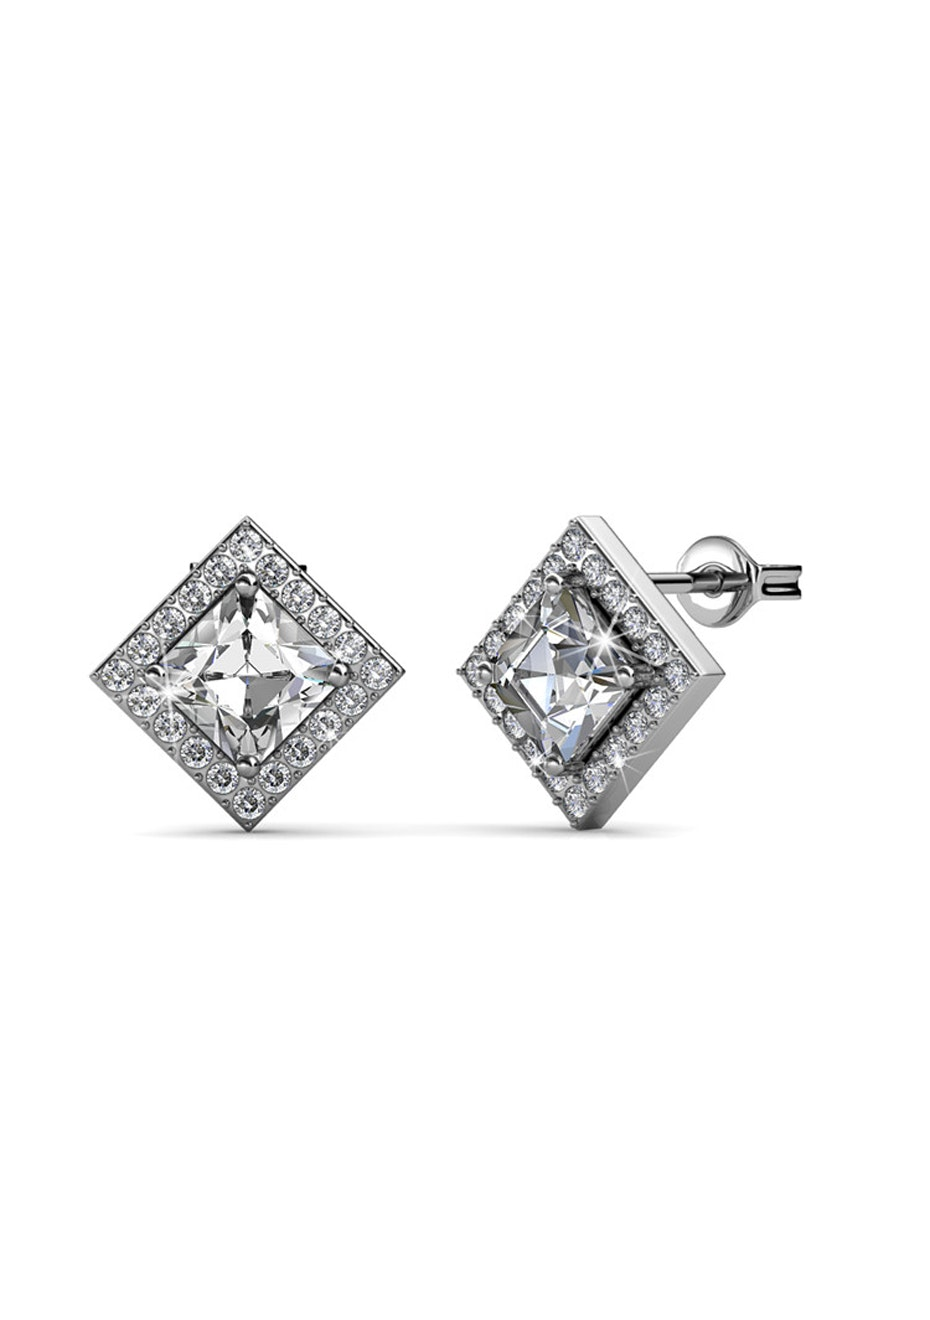 Apex White Gold Earrings Embellished with Crystals from Swarovski